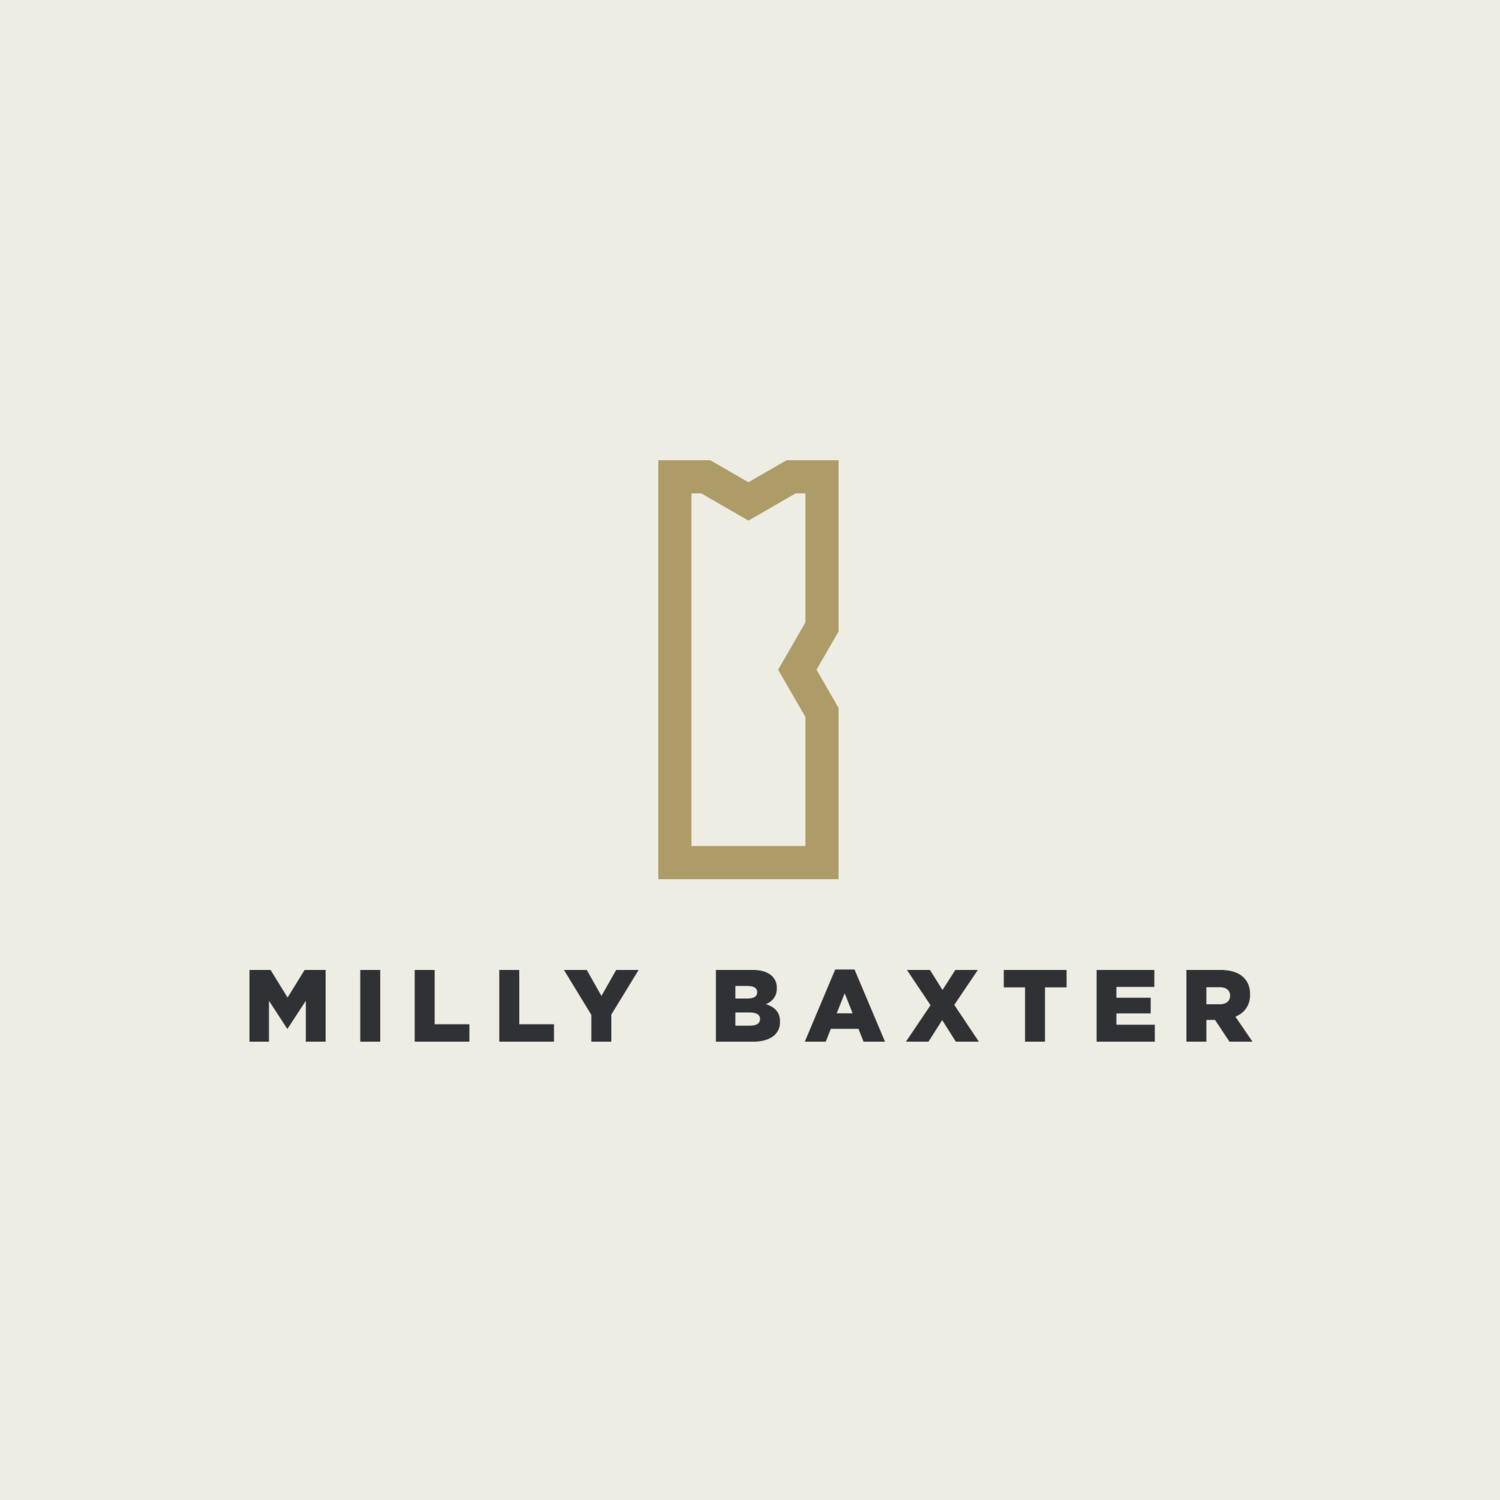 Landlord Insurance Quote Milly Baxter Landlord Insurance Brochure & Application  Milly Baxter